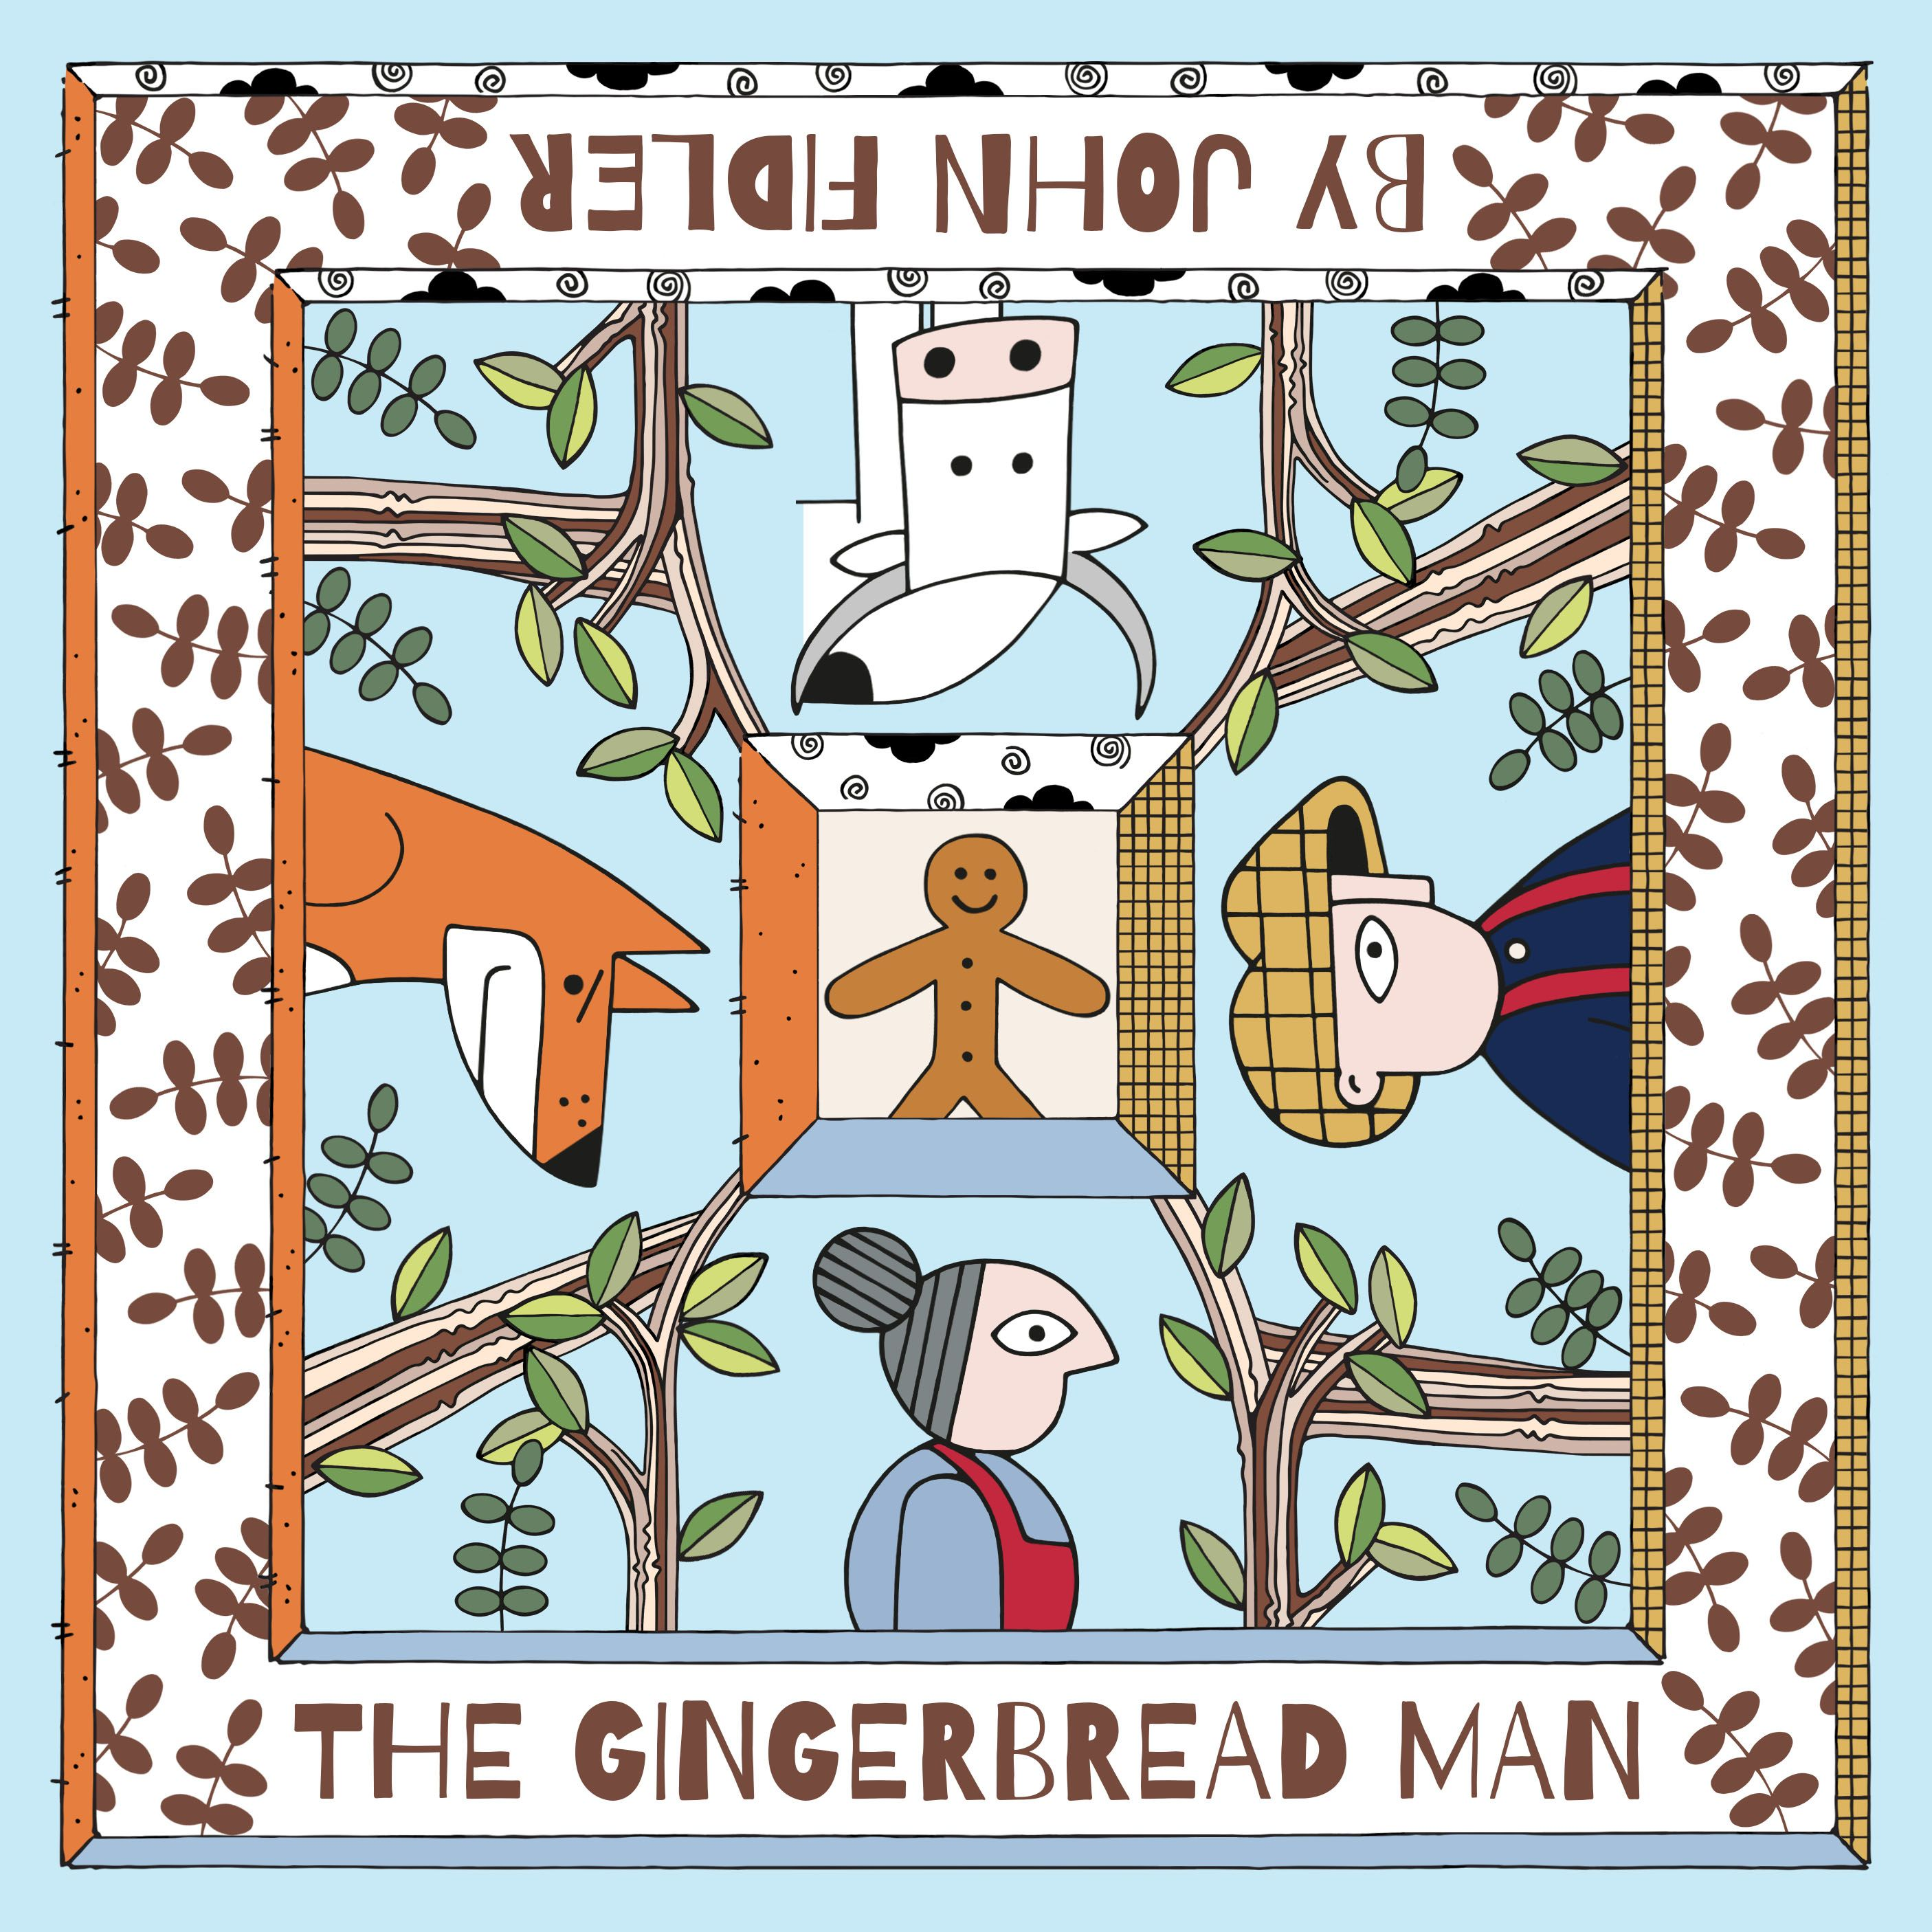 The Gingerbread Man By John Fidler Coming Soon